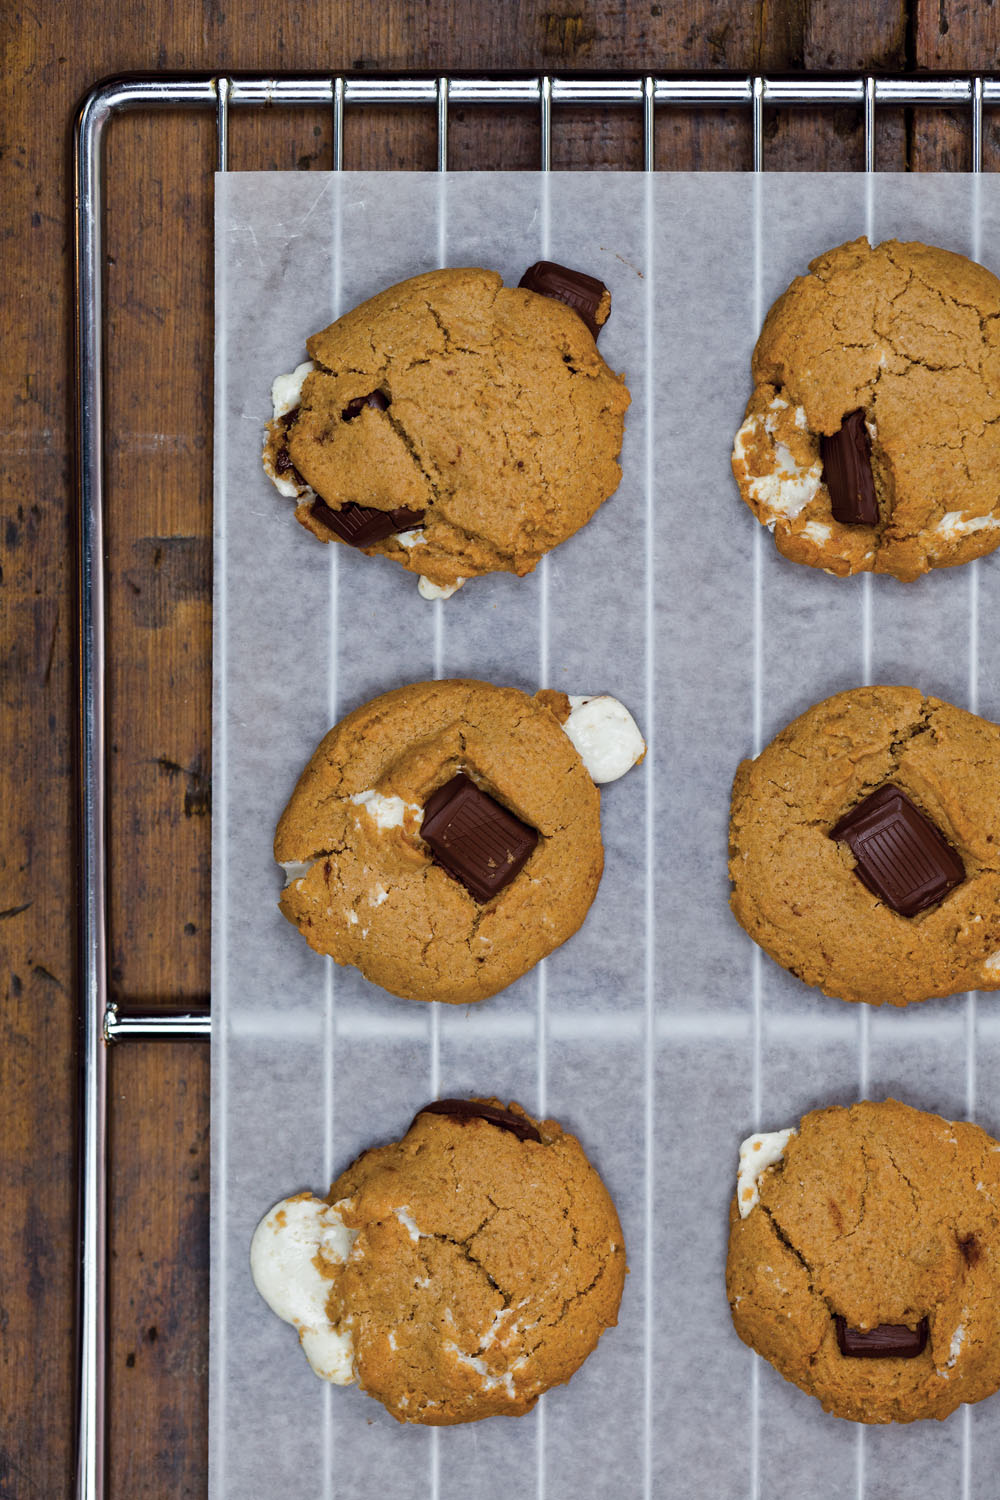 Bunner's Smores Cookie sm.jpg